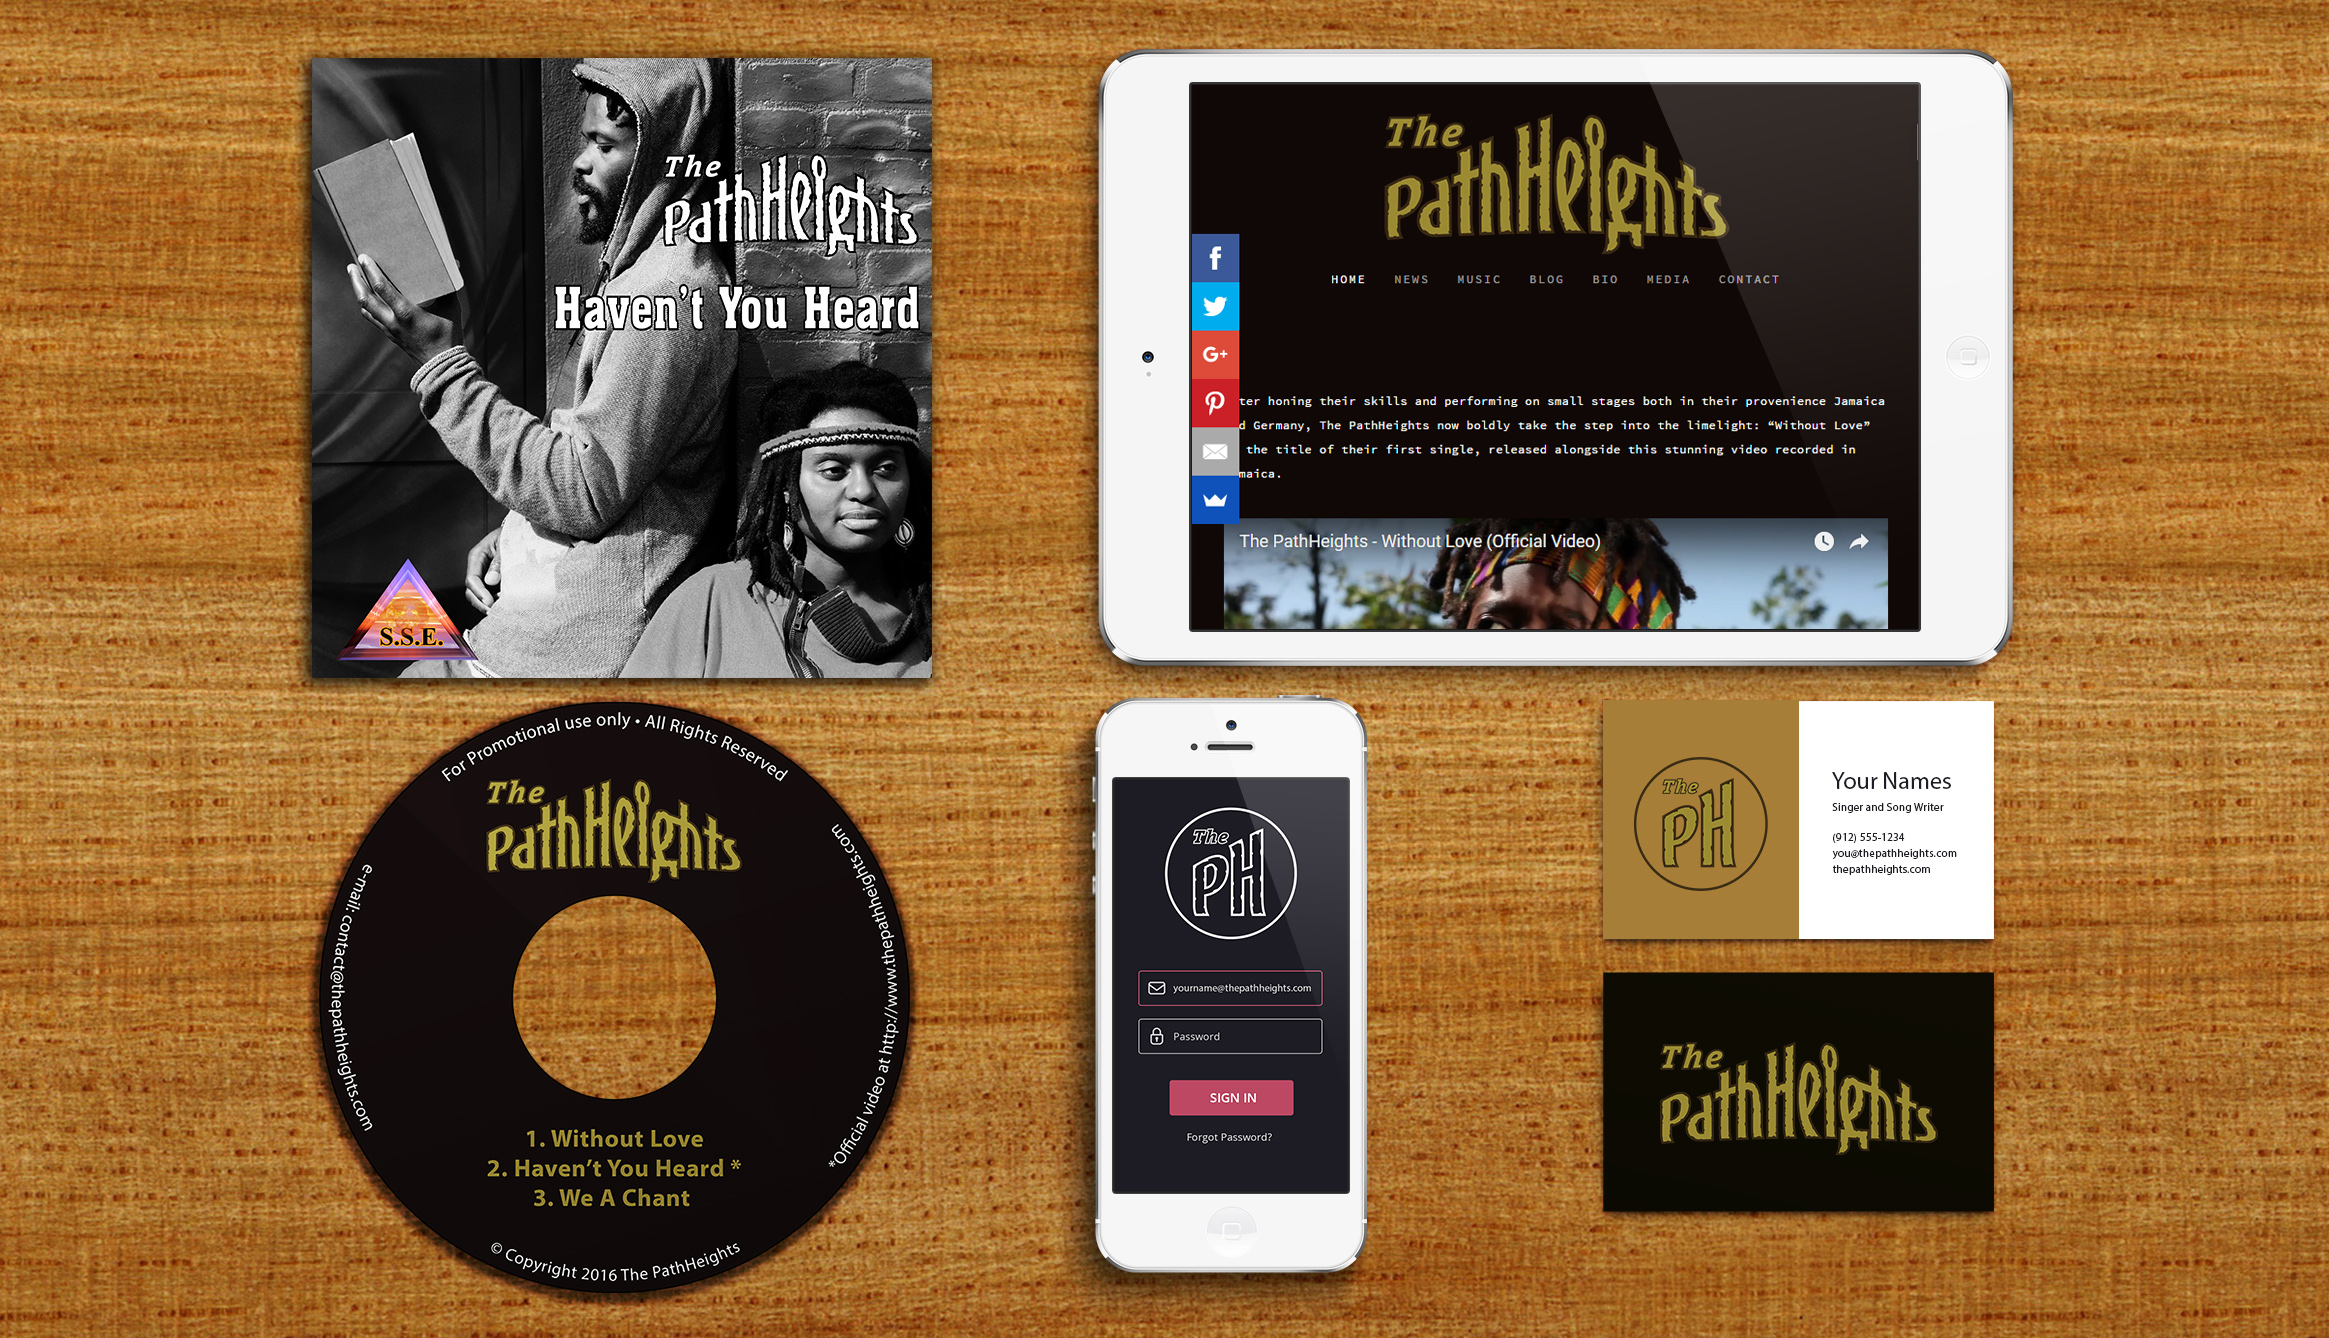 The PathHeights Brand